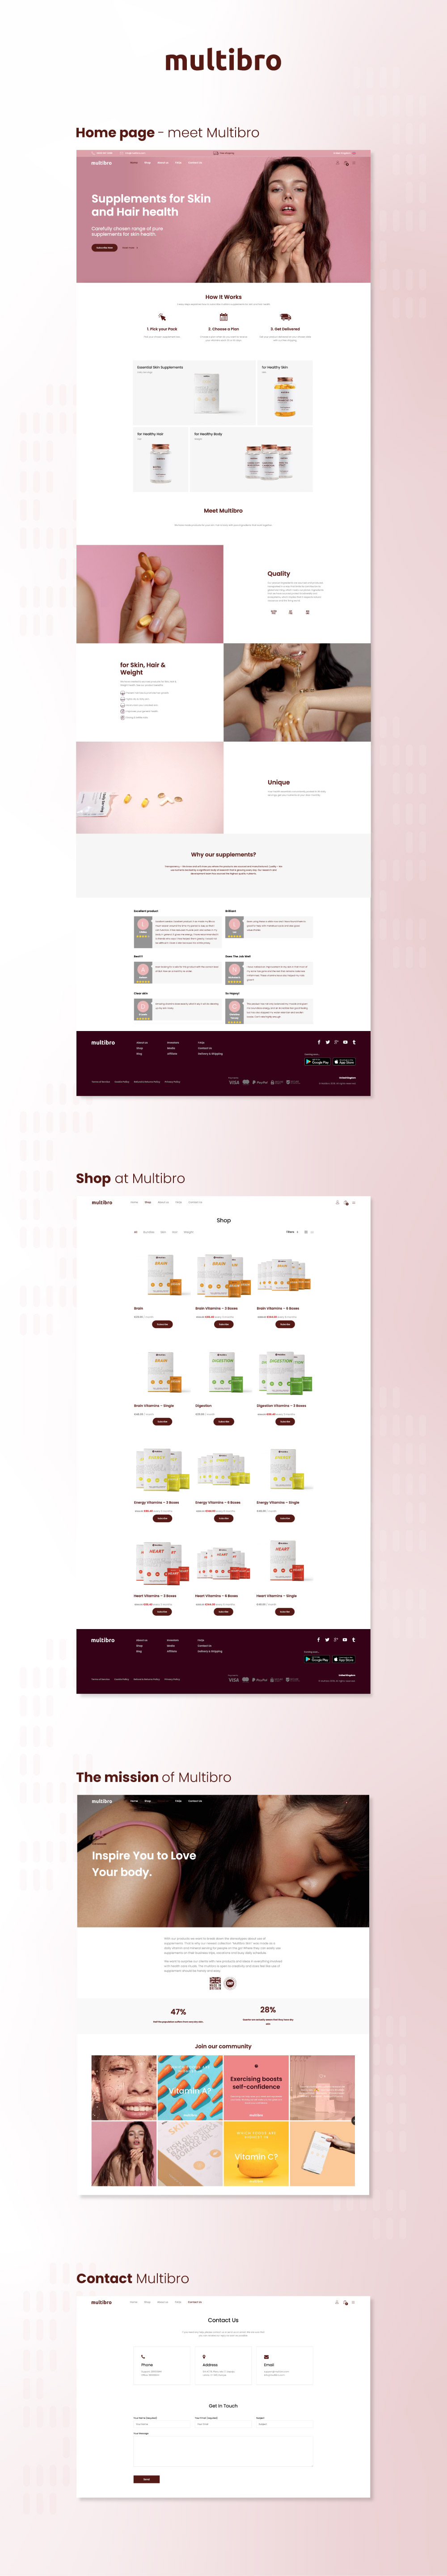 Multibro Portfolio vitamins development design and website